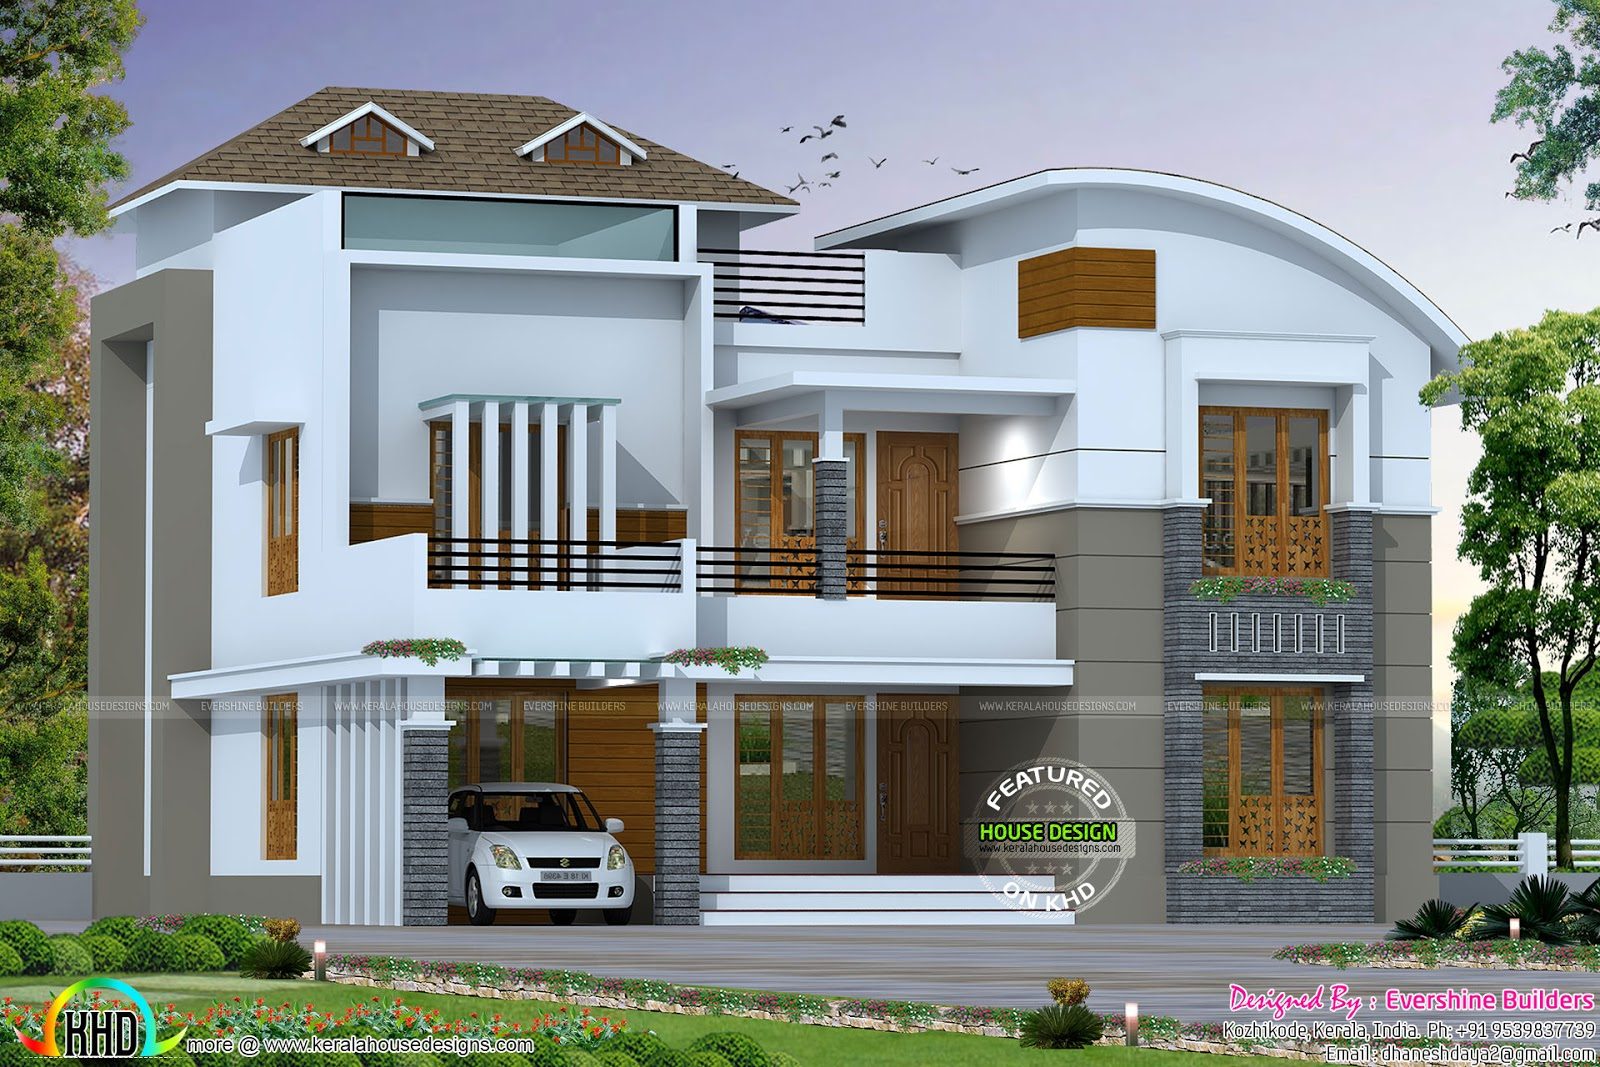 4 Bedroom Curved Roof Mix Contemporary Home Part - 15: Square Feet Details. Ground Floor : 1636 Sq.Ft. First Floor : 1290 Sq.Ft.  Total Area : 2926 Sq.Ft. No. Of Bedrooms : 4. Design Style : Mixed Roof Mix